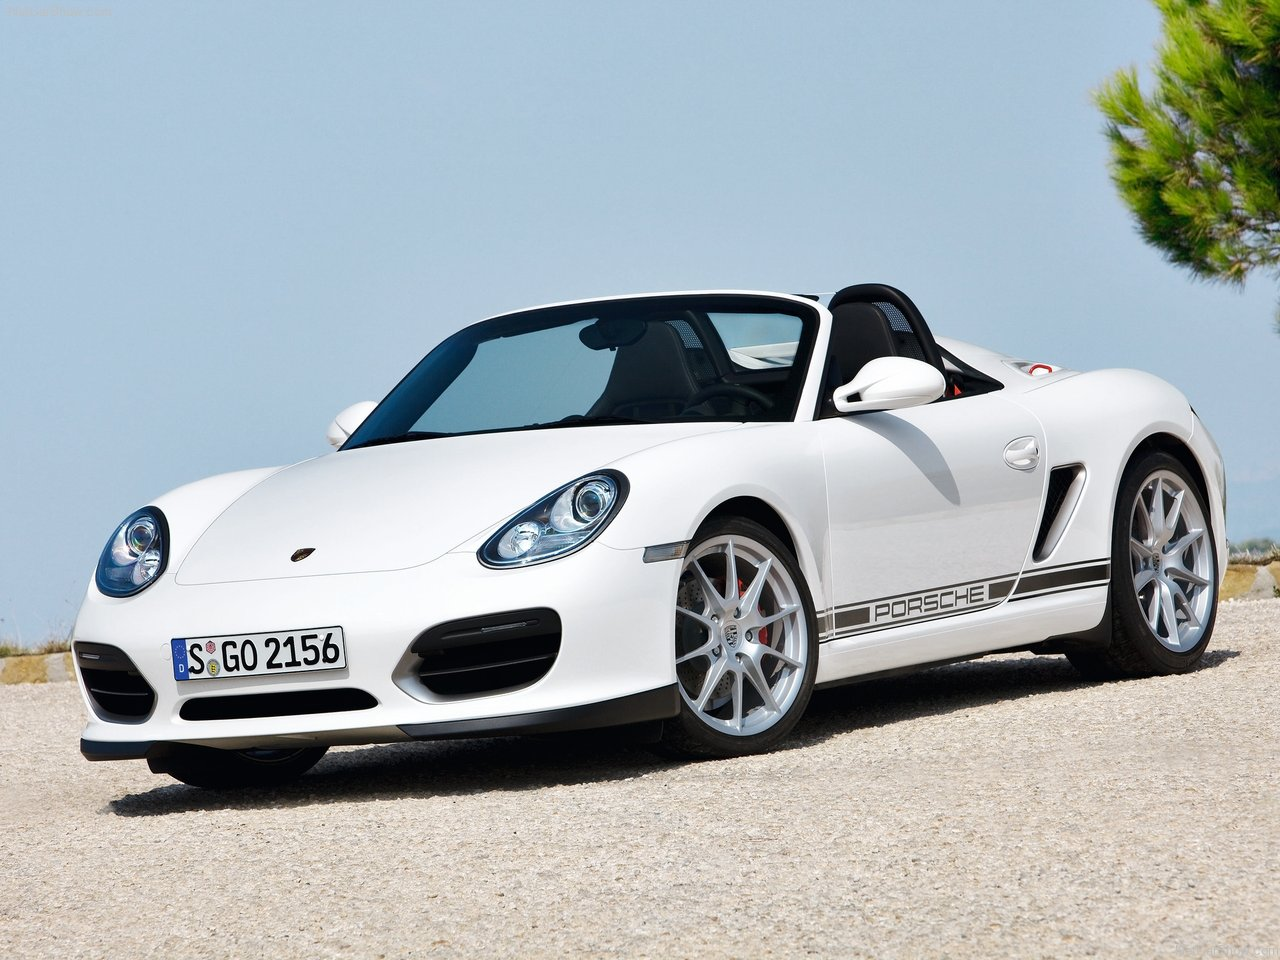 1230carswallpapers Top 10 Most Beautiful Cars In The World